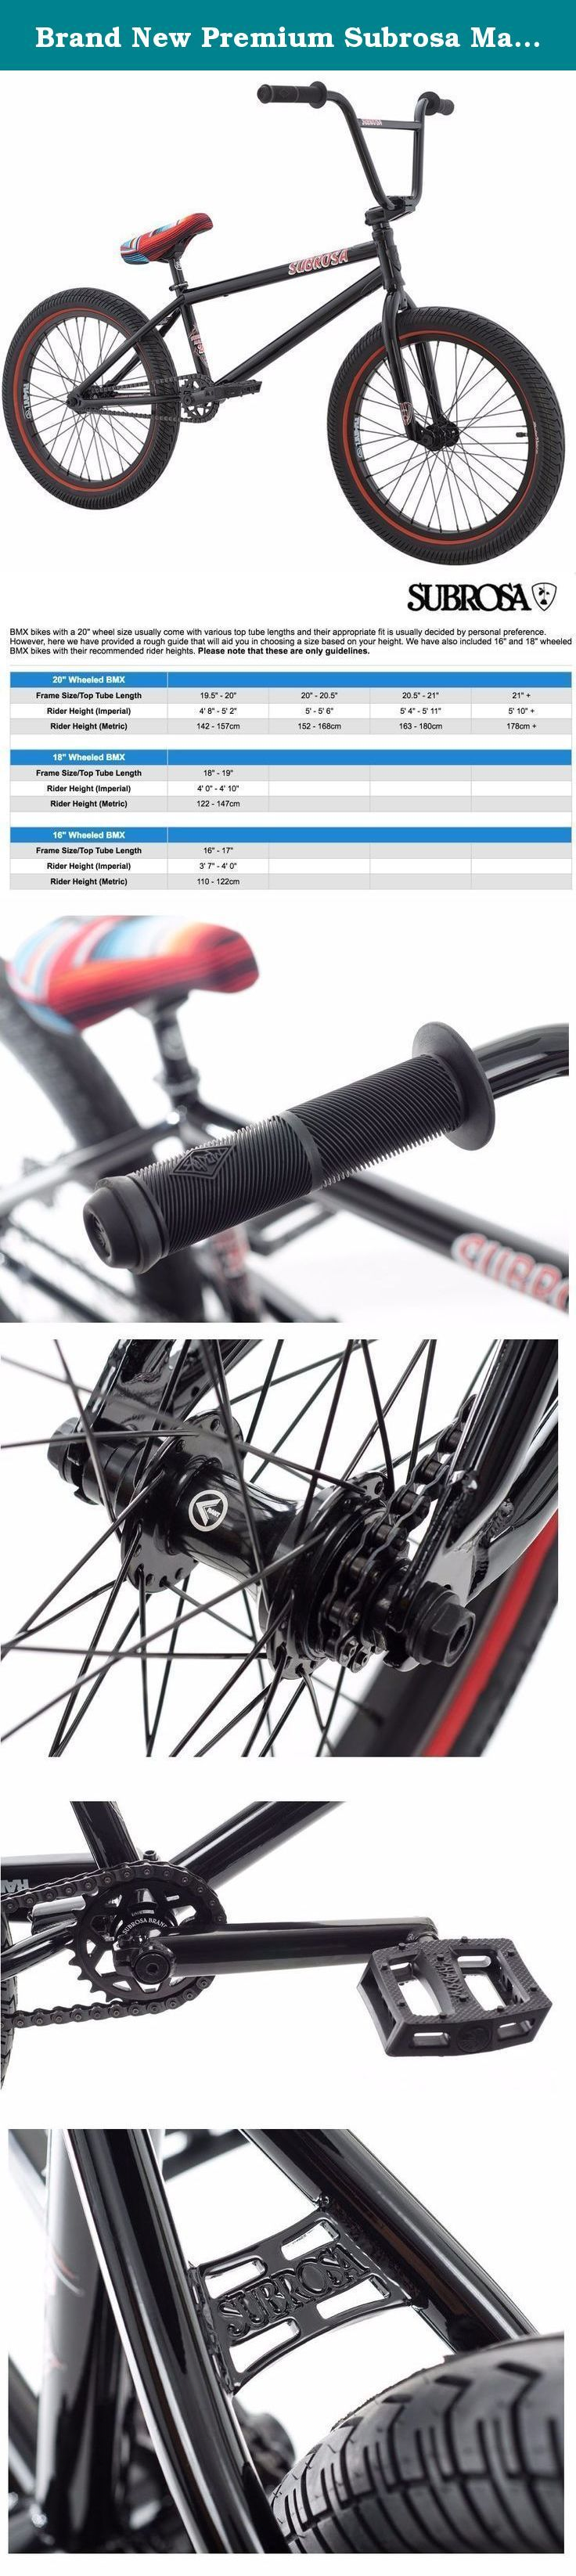 "Brand New Premium Subrosa Malum 20"" BMX Bike 2016 Hot Rod Gloss Black. Subrosa Malum BMX Bike The Malum line has a distinct theme; Hot Rods vs Rat Rods. Subrosa have paid homage to both styles in the 2016 Malum line to show BMX it doesn't matter what your ride looks like as long as you're having fun. A Hot Rod is typically an old car, rebuilt and customized to perfection just faster, leaner, and meaner than its stock form. A Rat Rod is an old car rebuilt and customized by any means…"